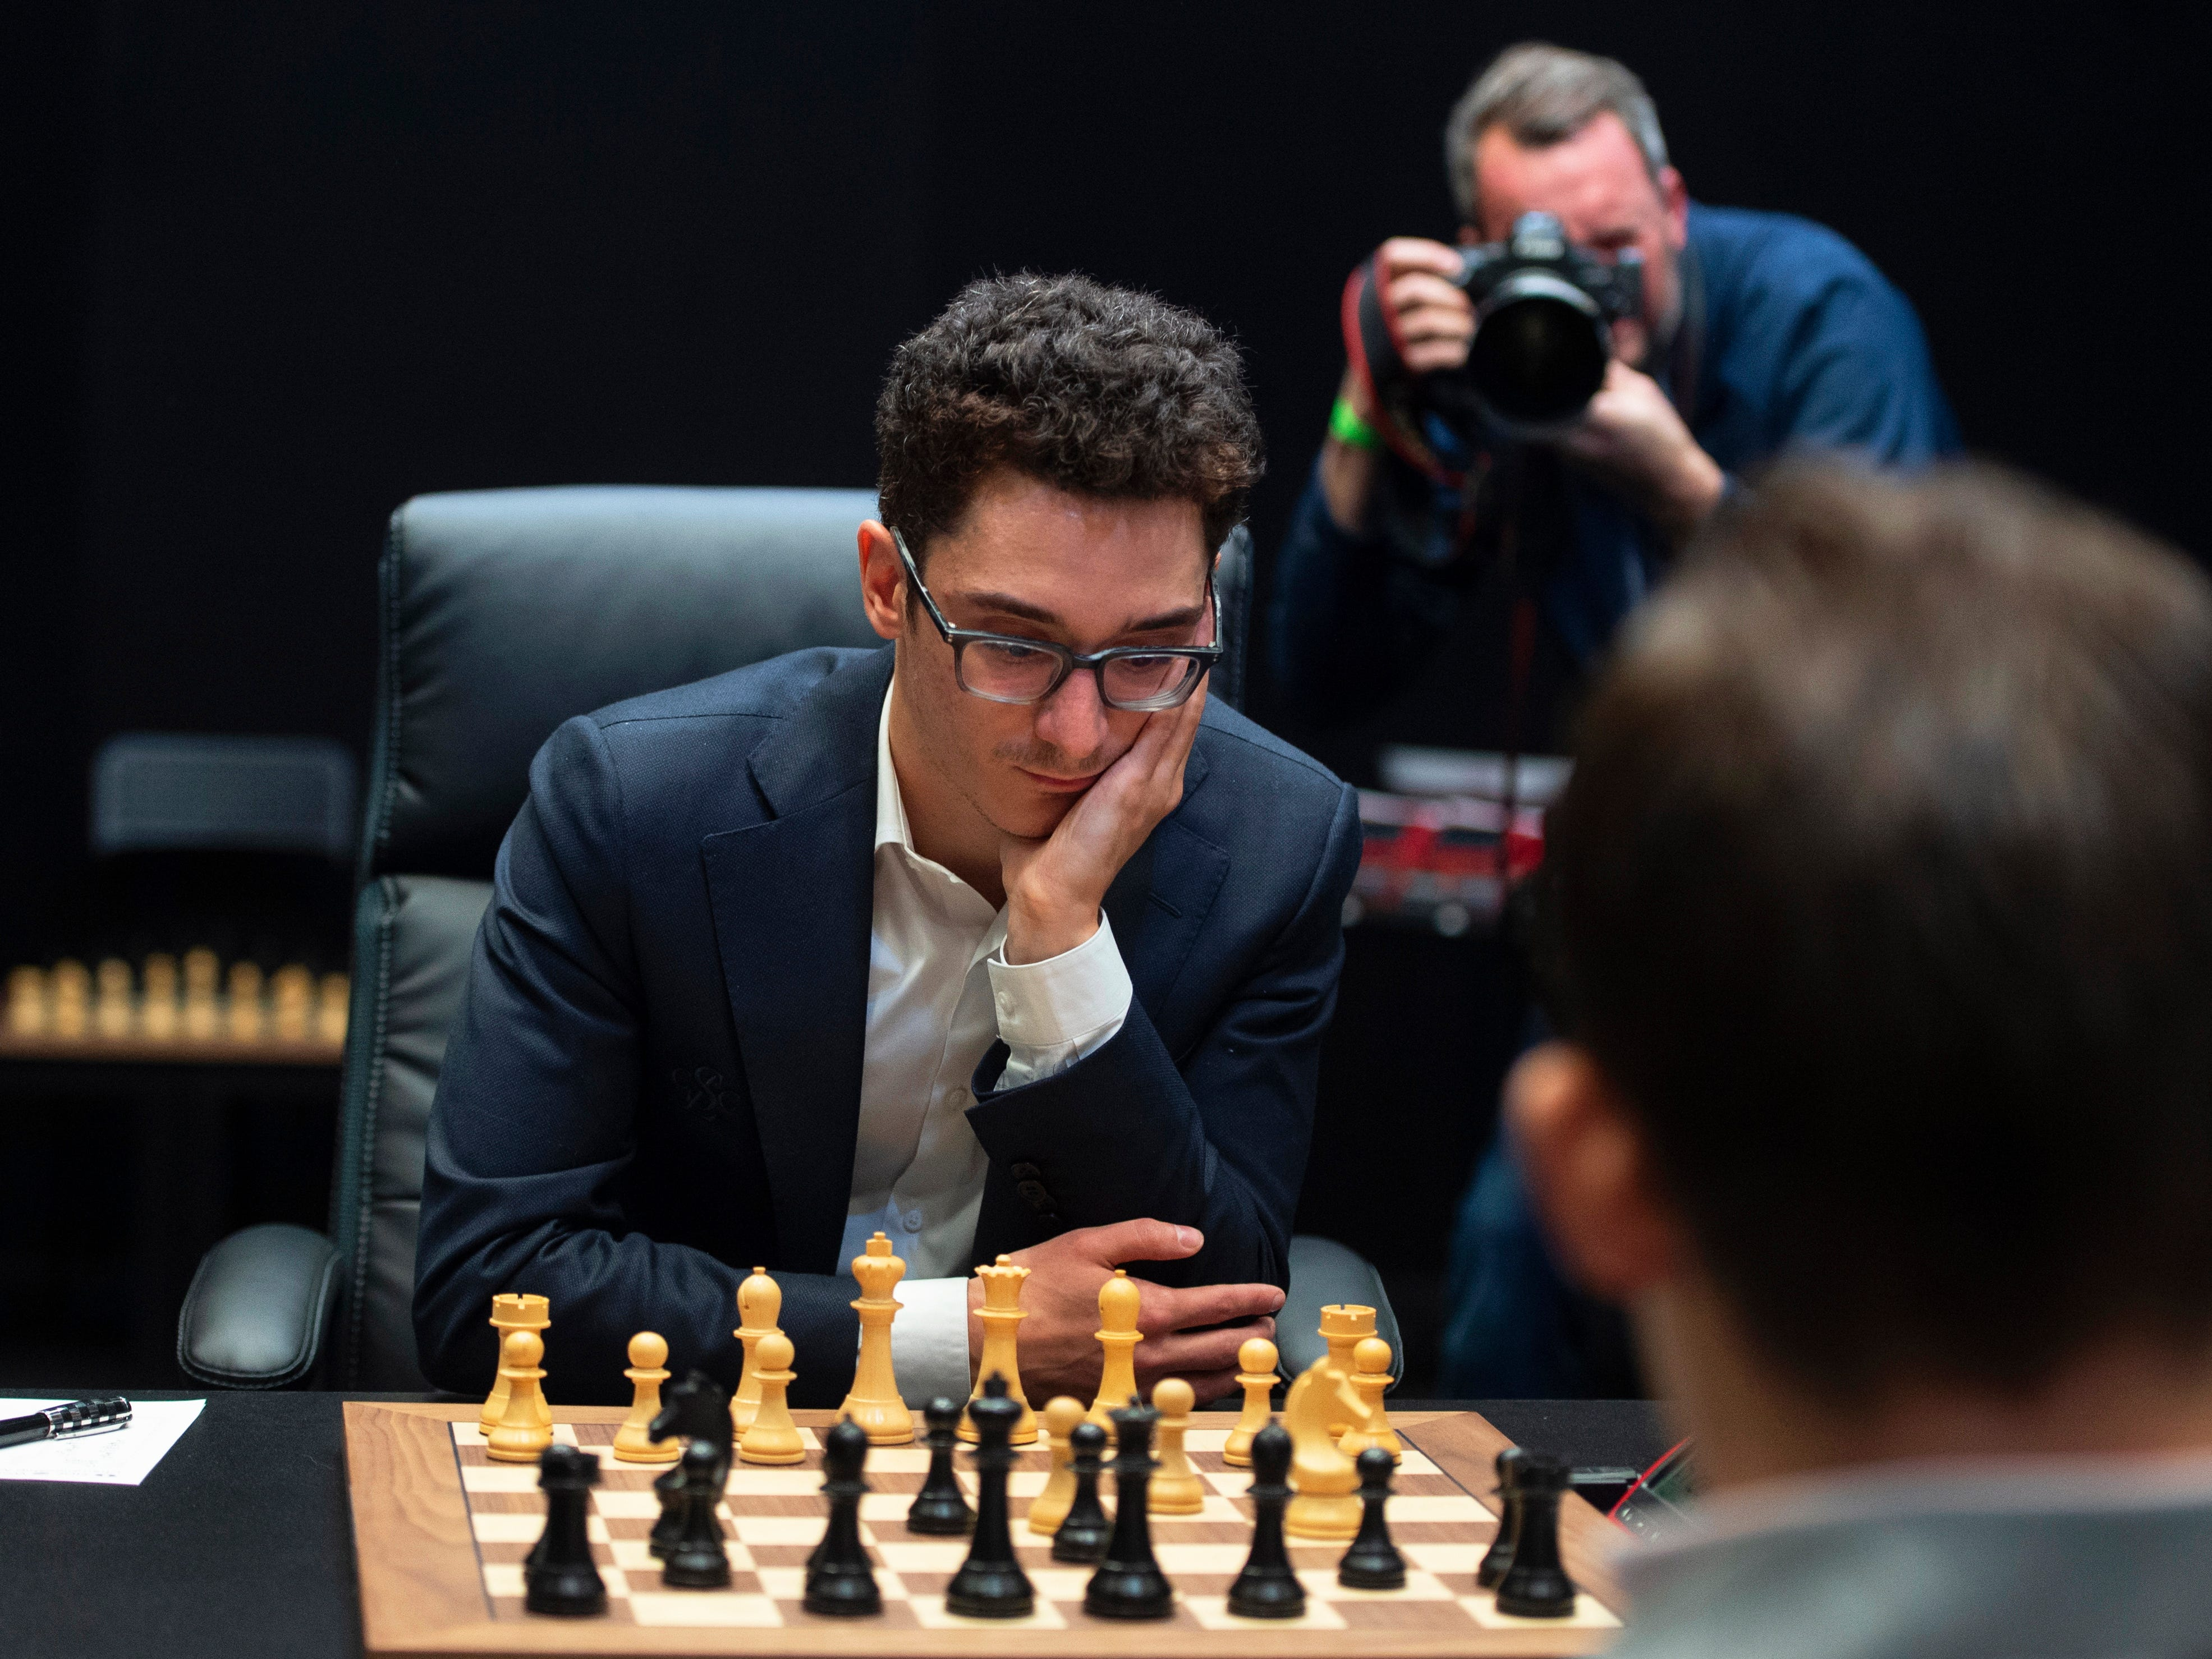 American challenger Fabiano Caruana, left, plays against reigning chess world champion Magnus Carlsen at the round 12 game during the World Chess Championship, Nov. 26, 2018, in London.